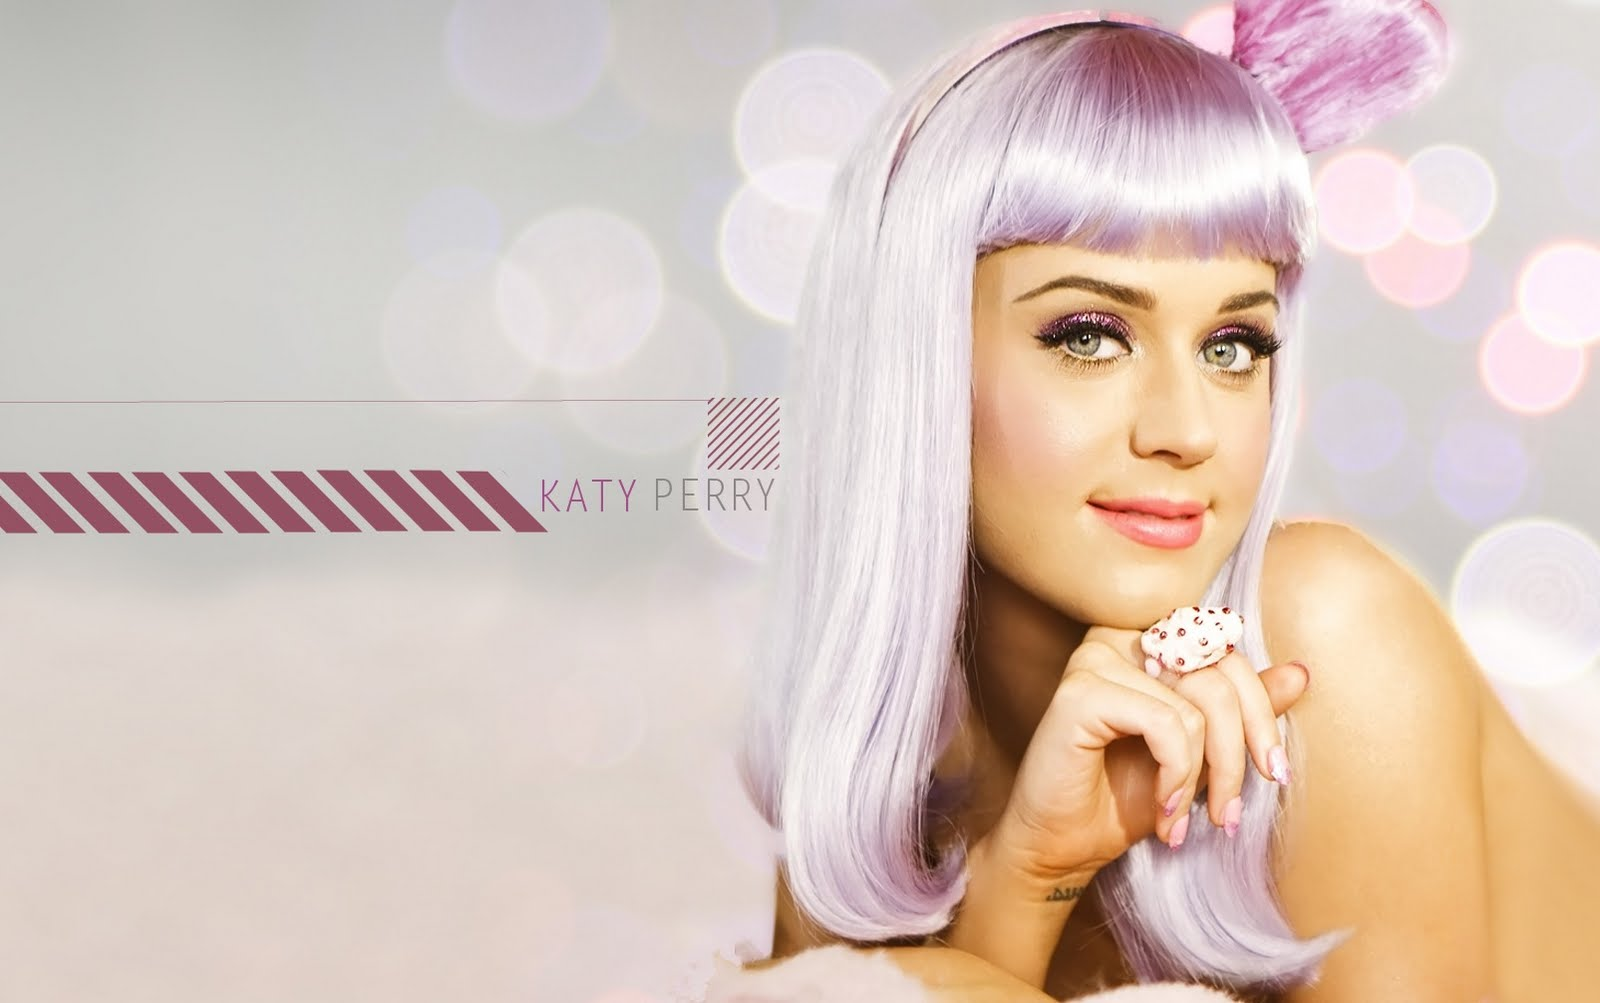 Hot Katy Perry Girls Pictures Top Models Actress Girl